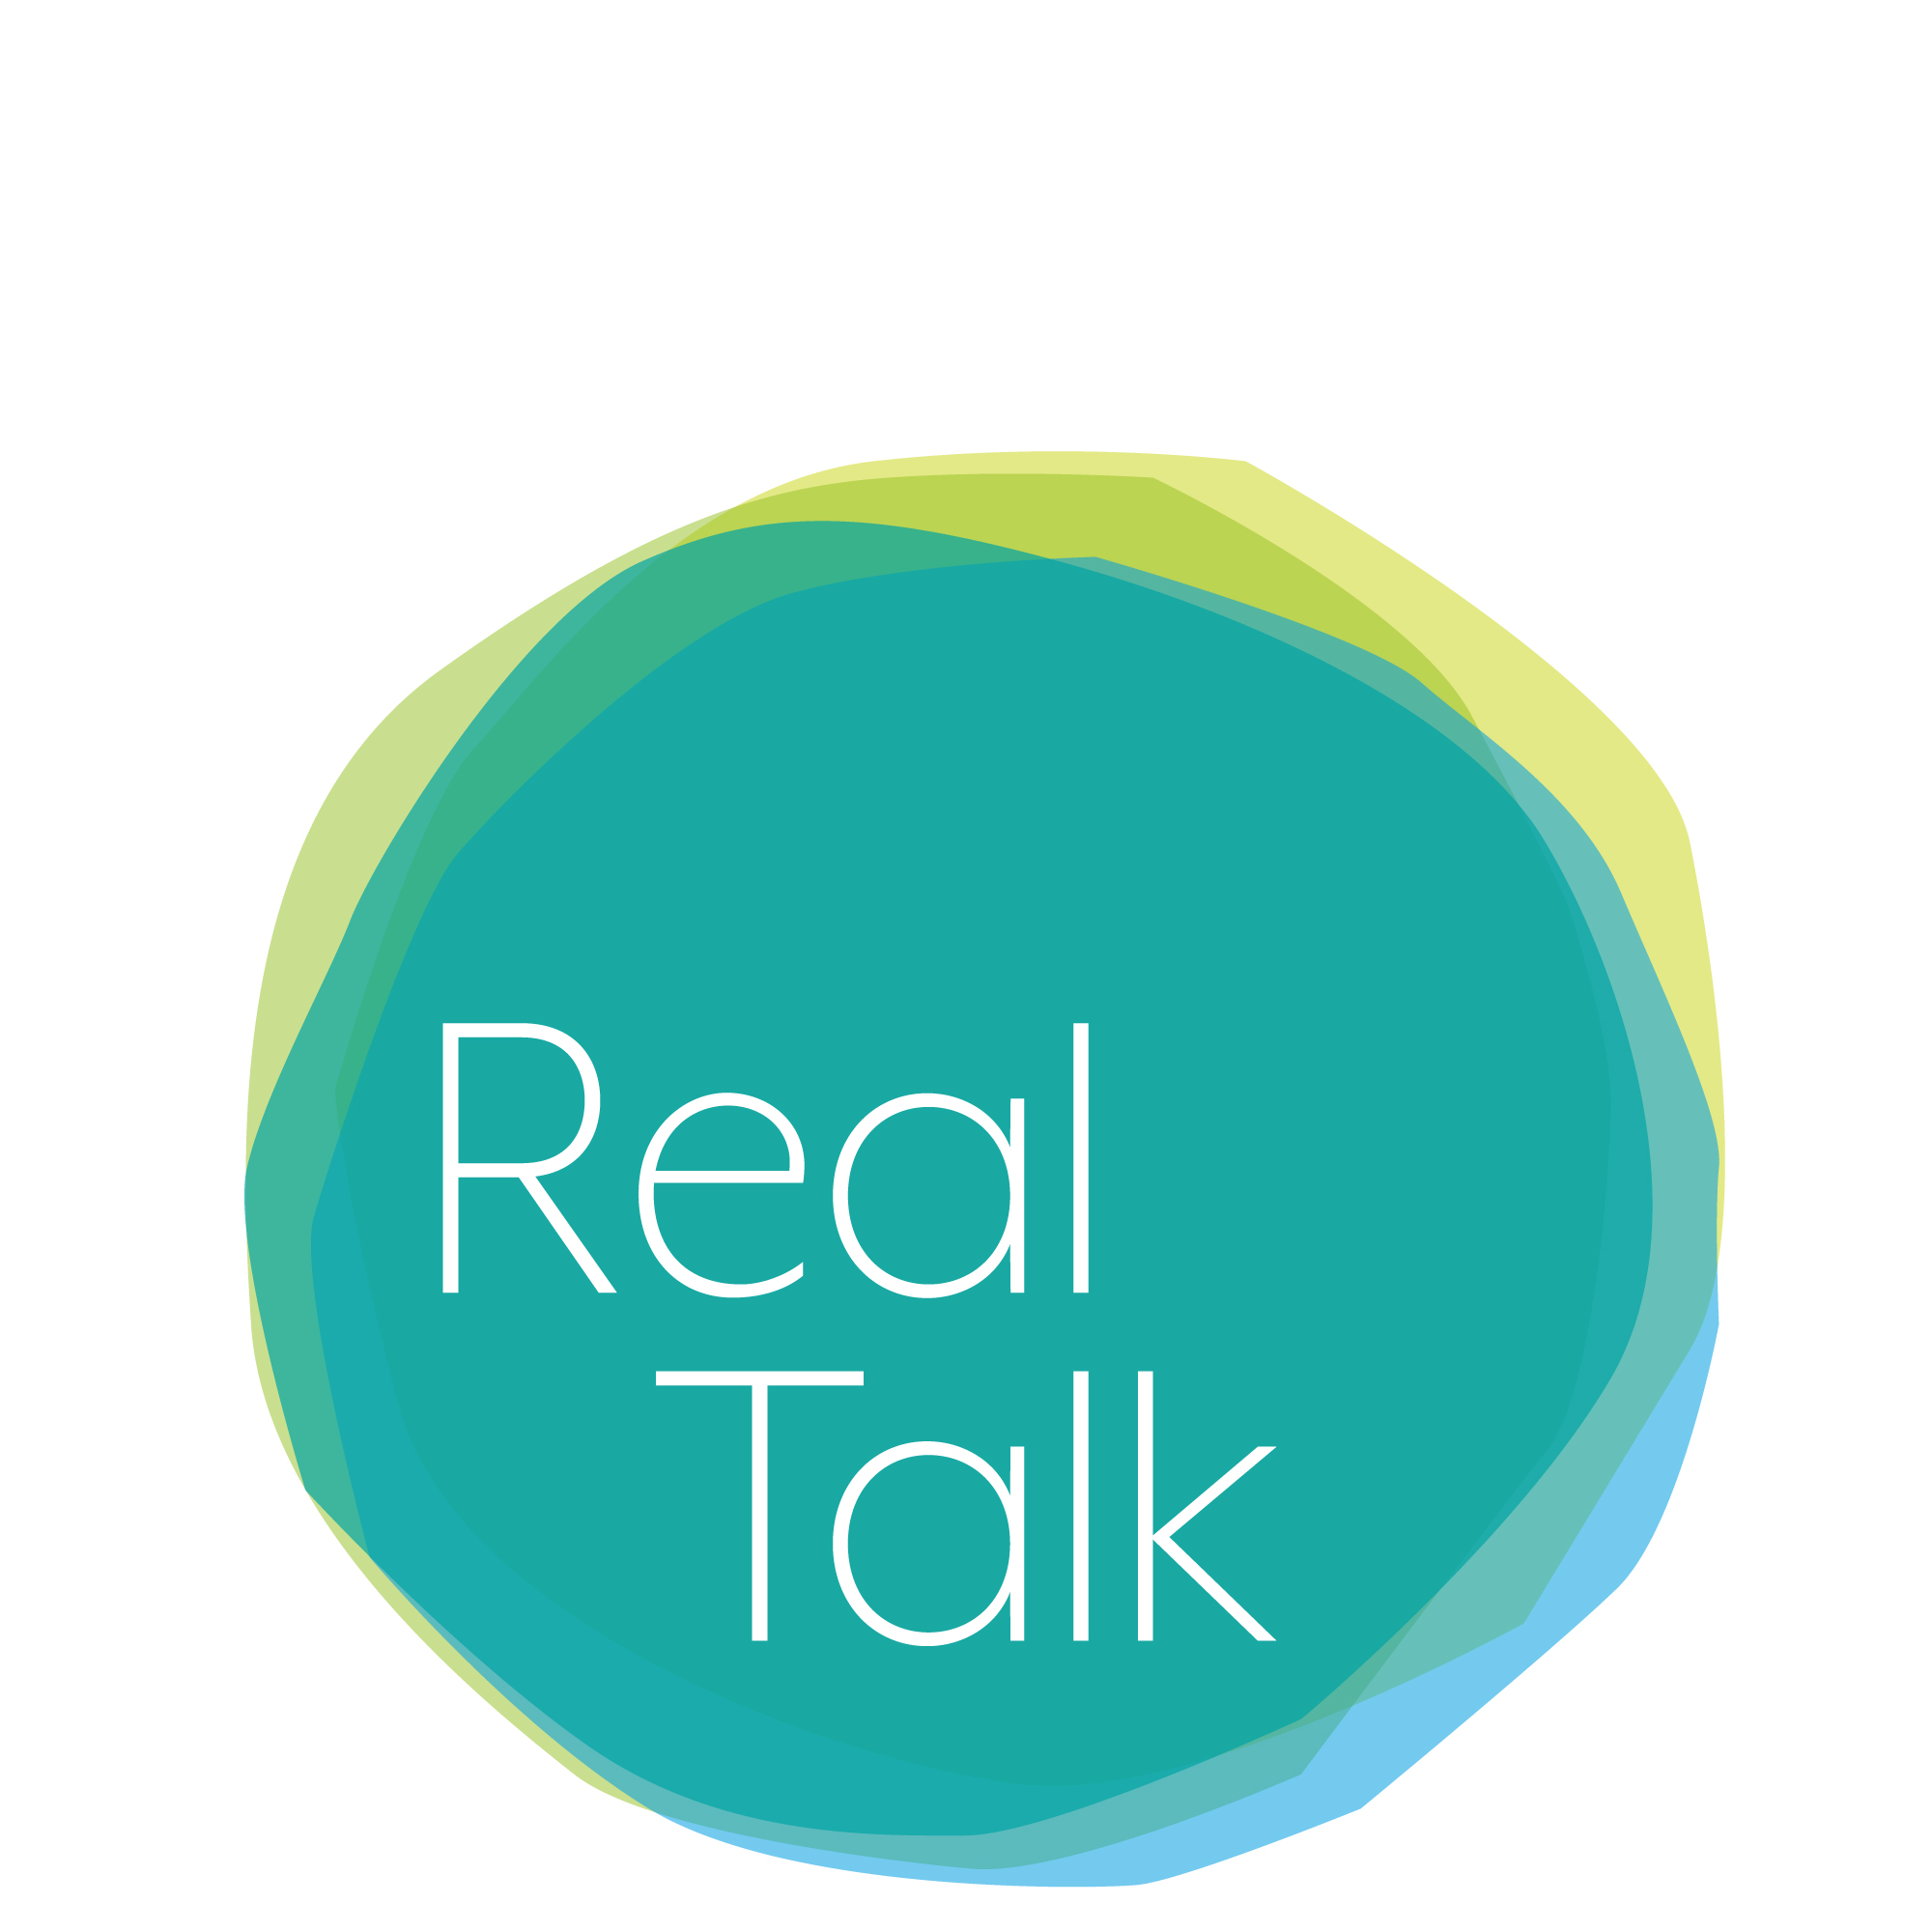 Real Talk logo as part of brand identity